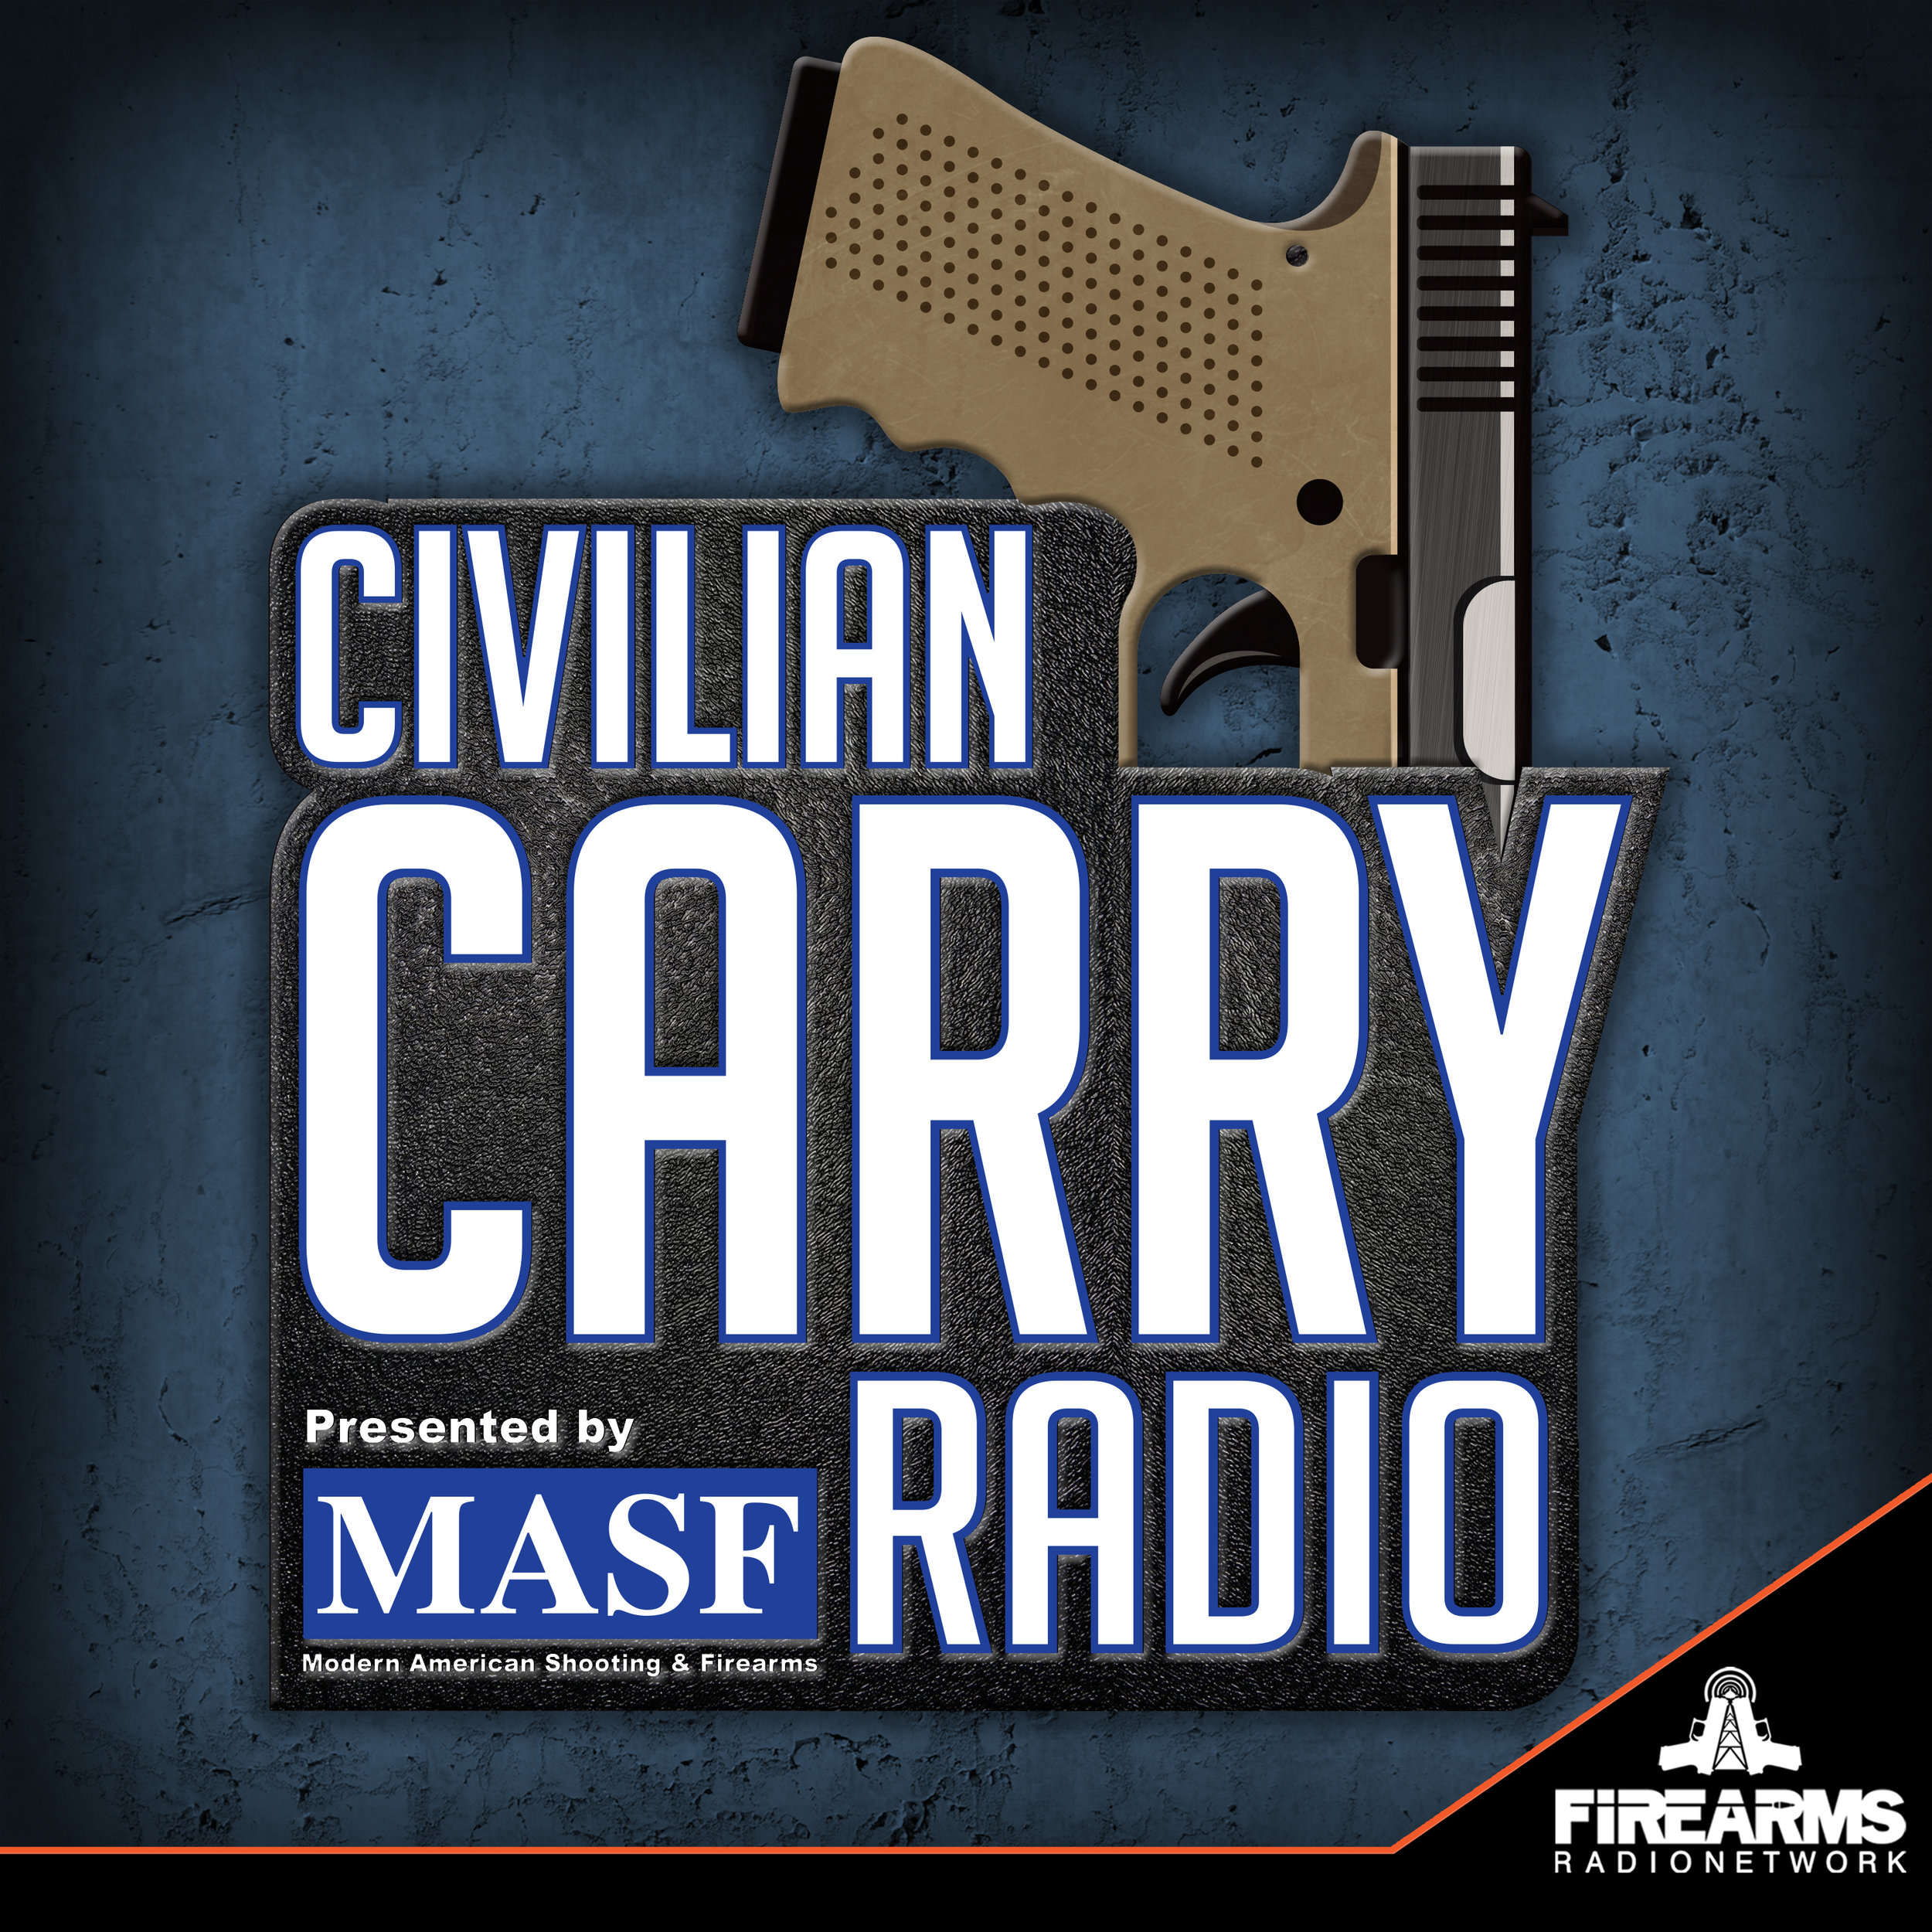 Contact Civilian Carry Radio